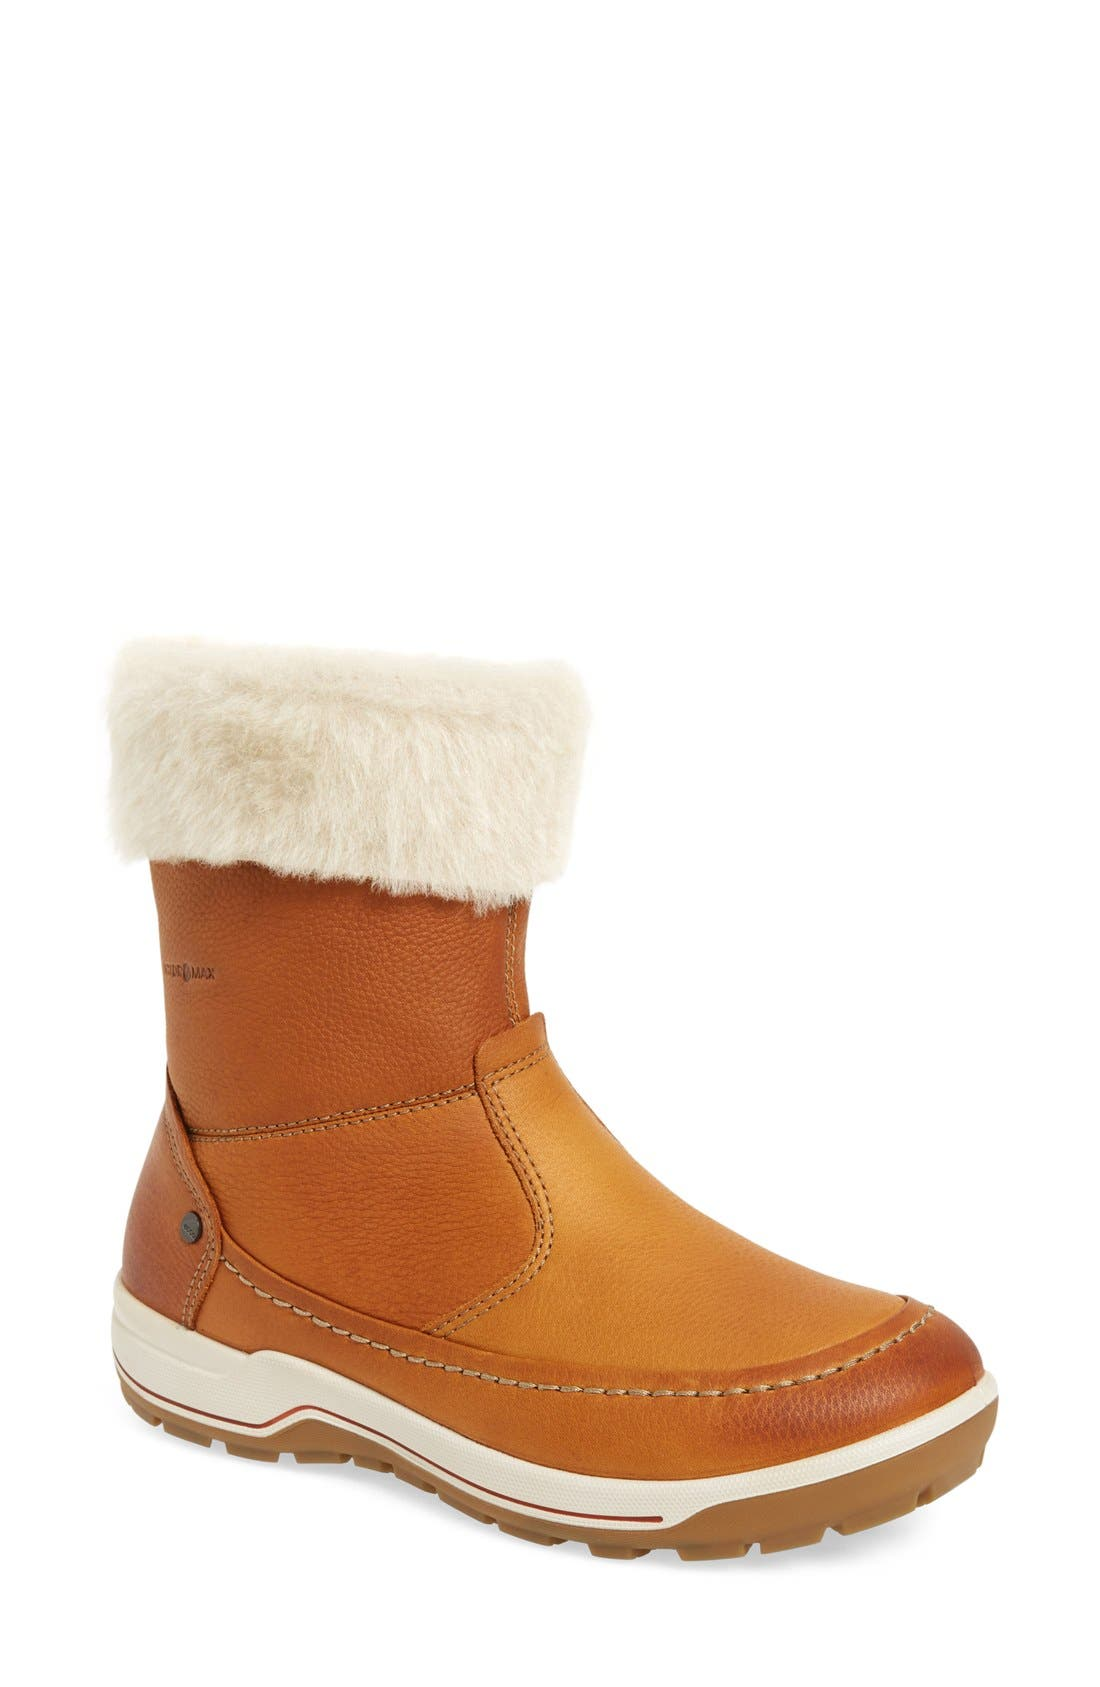 Trace Water Resistant Bootie,                             Main thumbnail 1, color,                             Amber Oiled Nubuck Leather